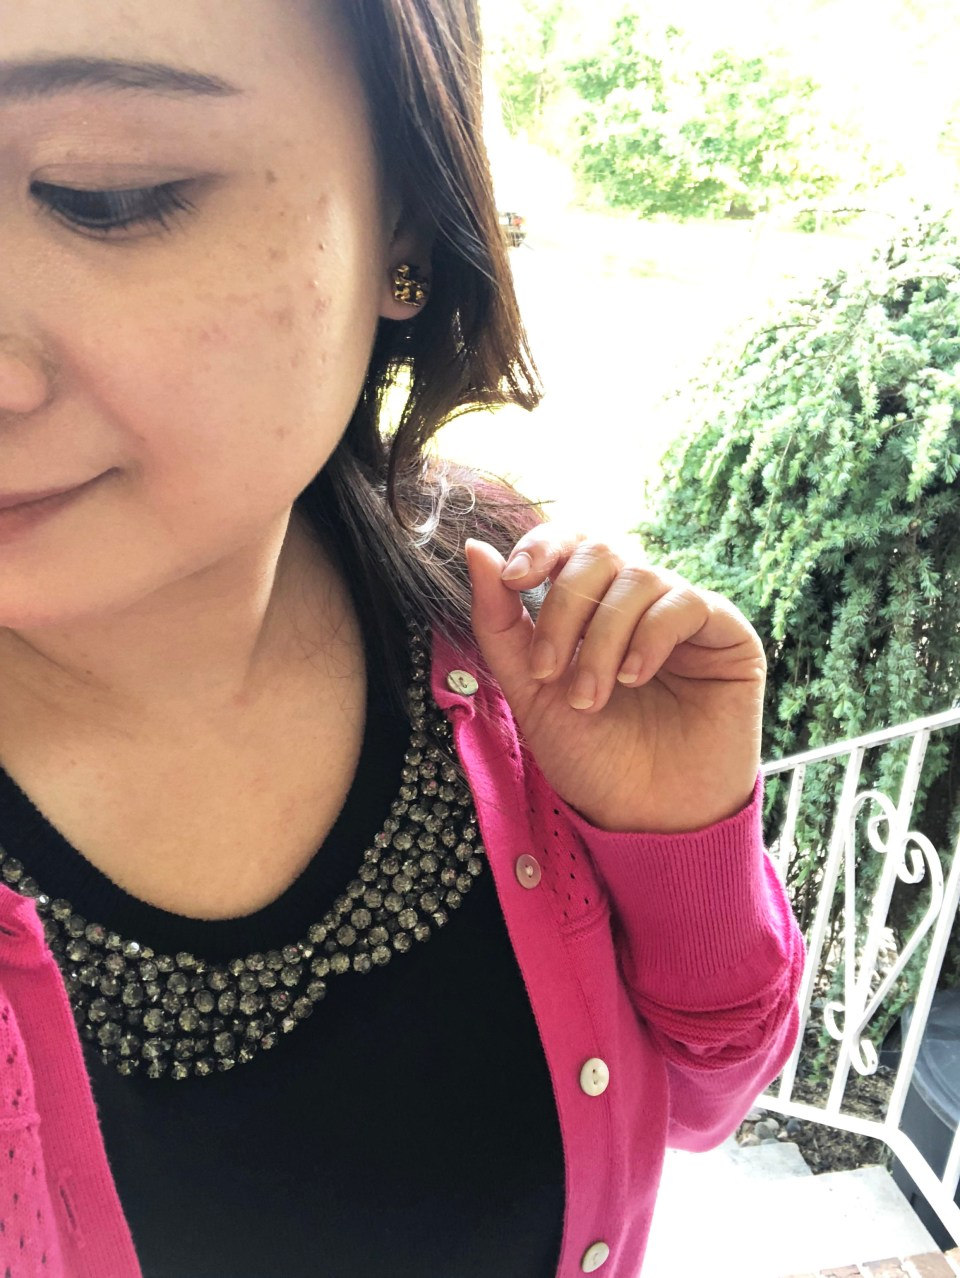 Jeweled Peter Pan Collar + Pink Cardigan 12